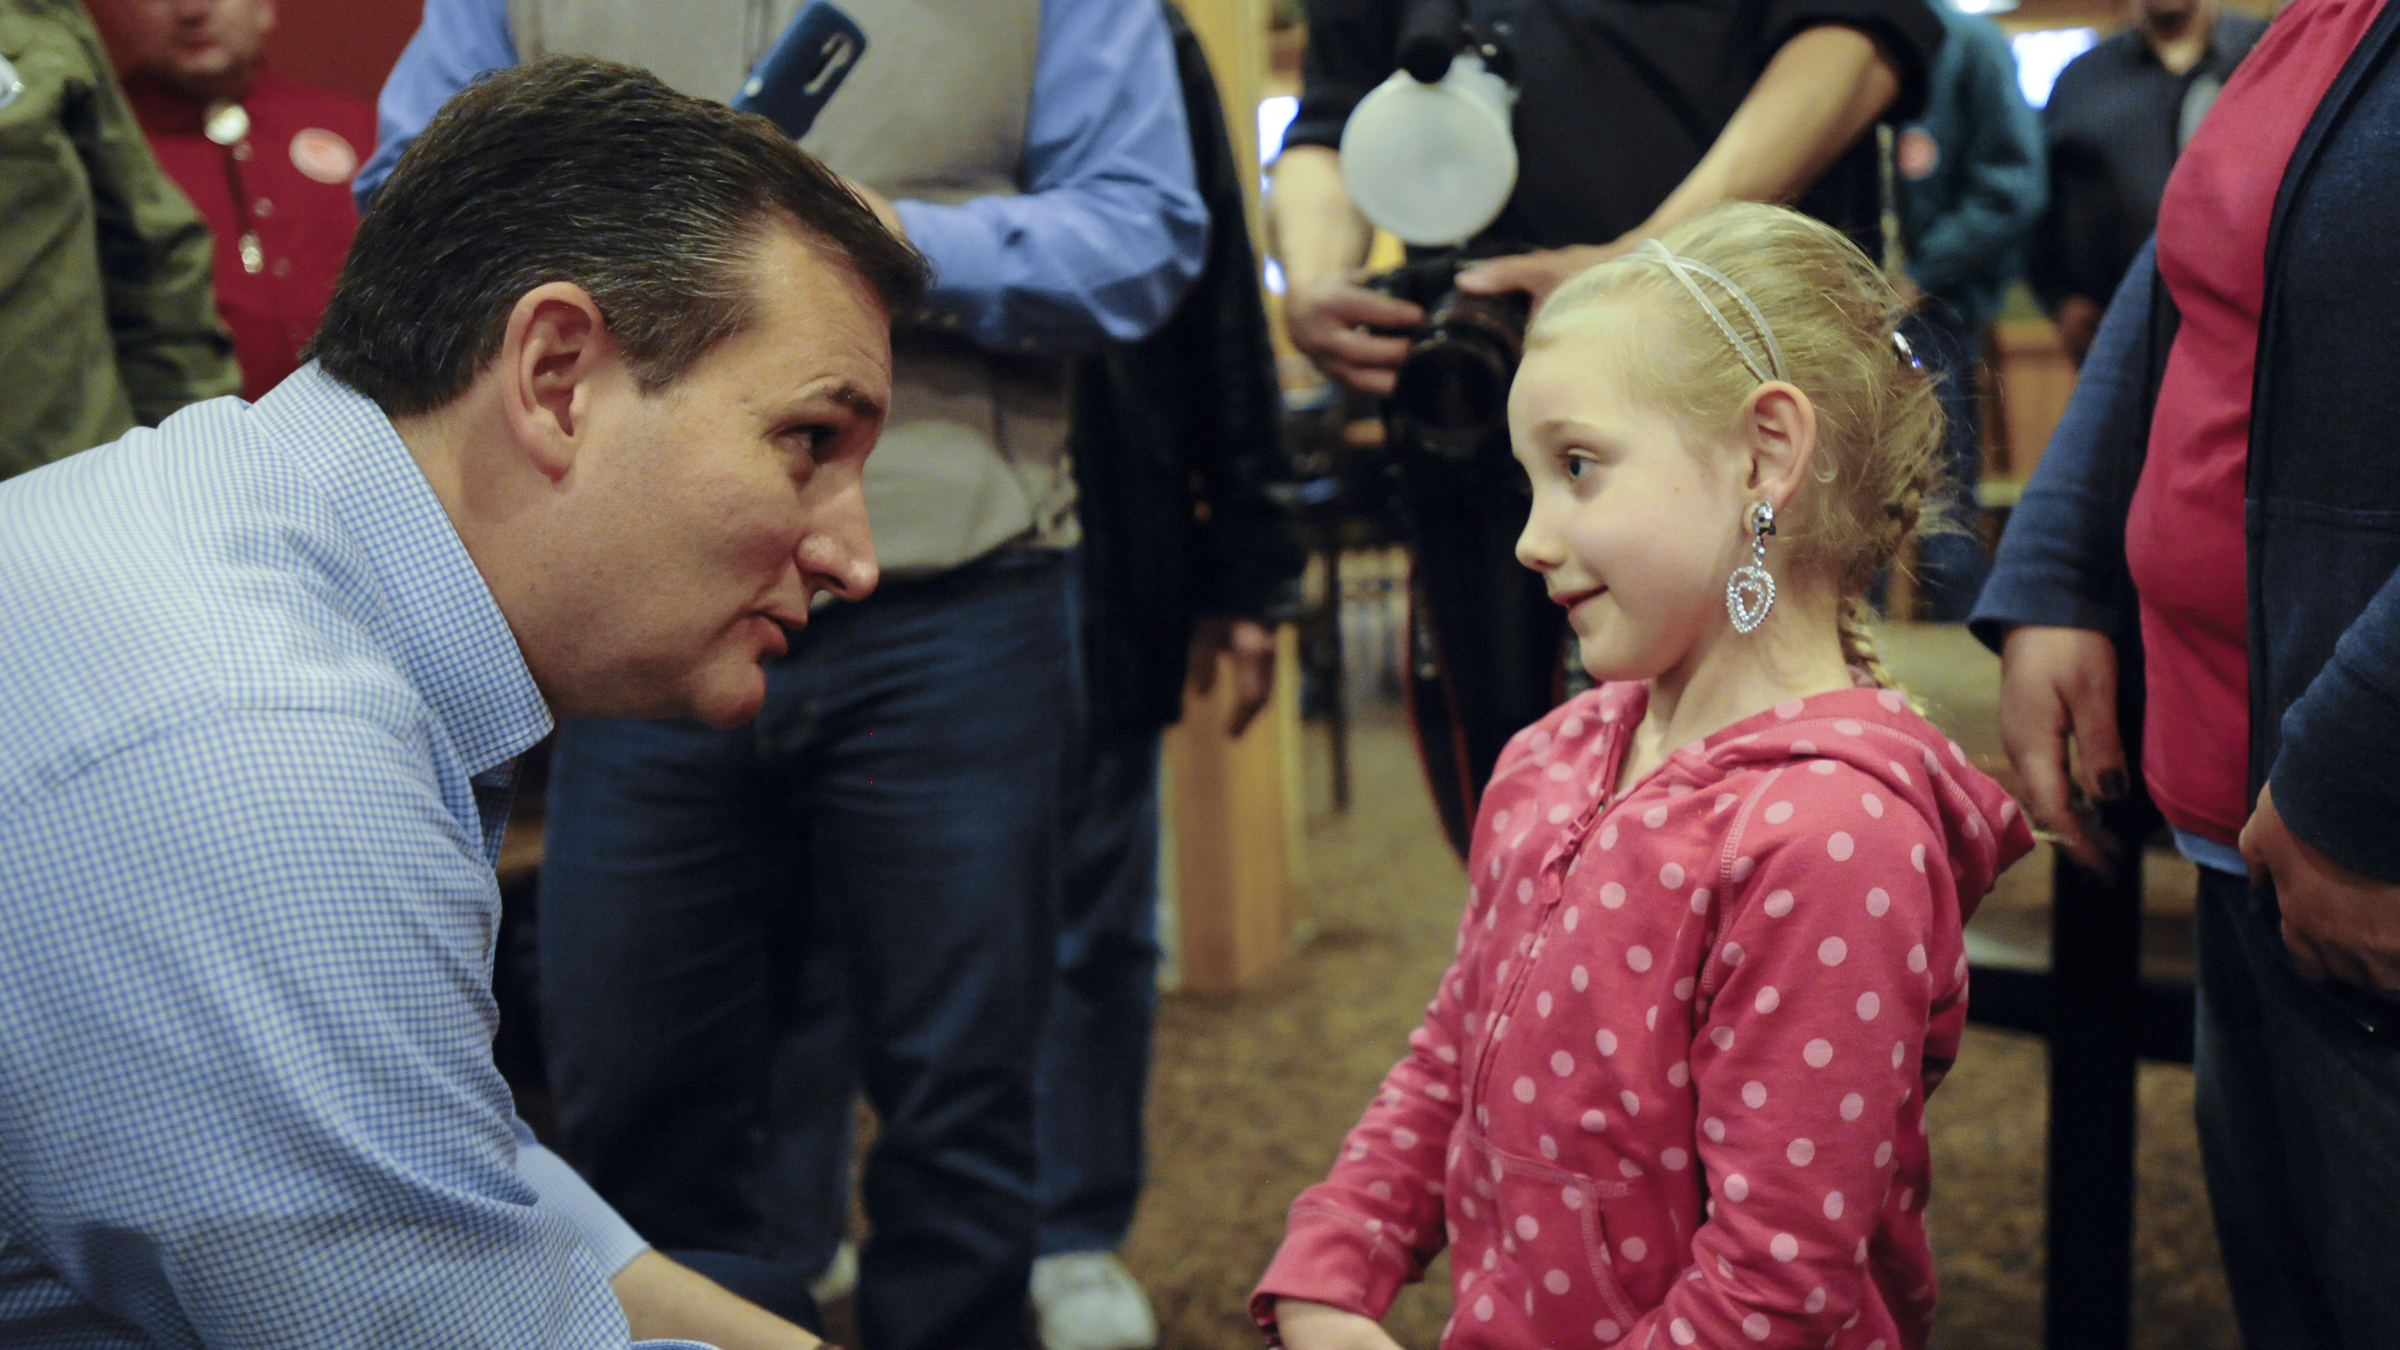 U.S. Republican presidential candidate Ted Cruz talks to Sally Vandall, 5, of Newton, Iowa at a campaign stop at a Pizza Ranch restaurant in Newton, Iowa November 29, 2015.